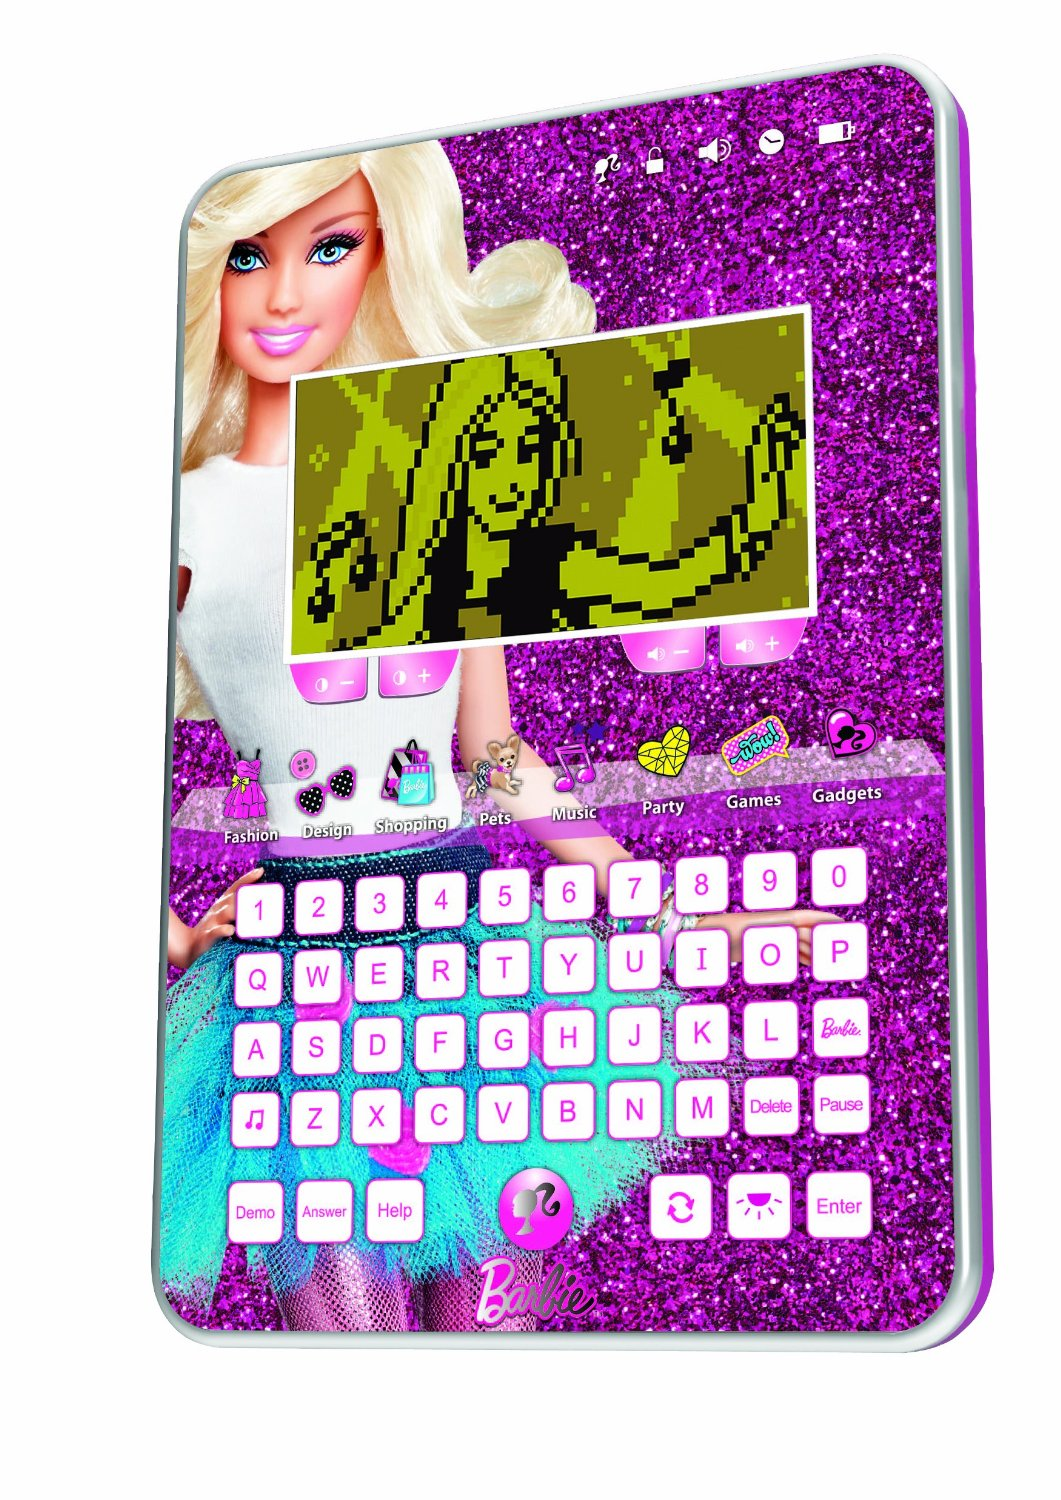 Oregon scientific barbie fashion tablet pink 32